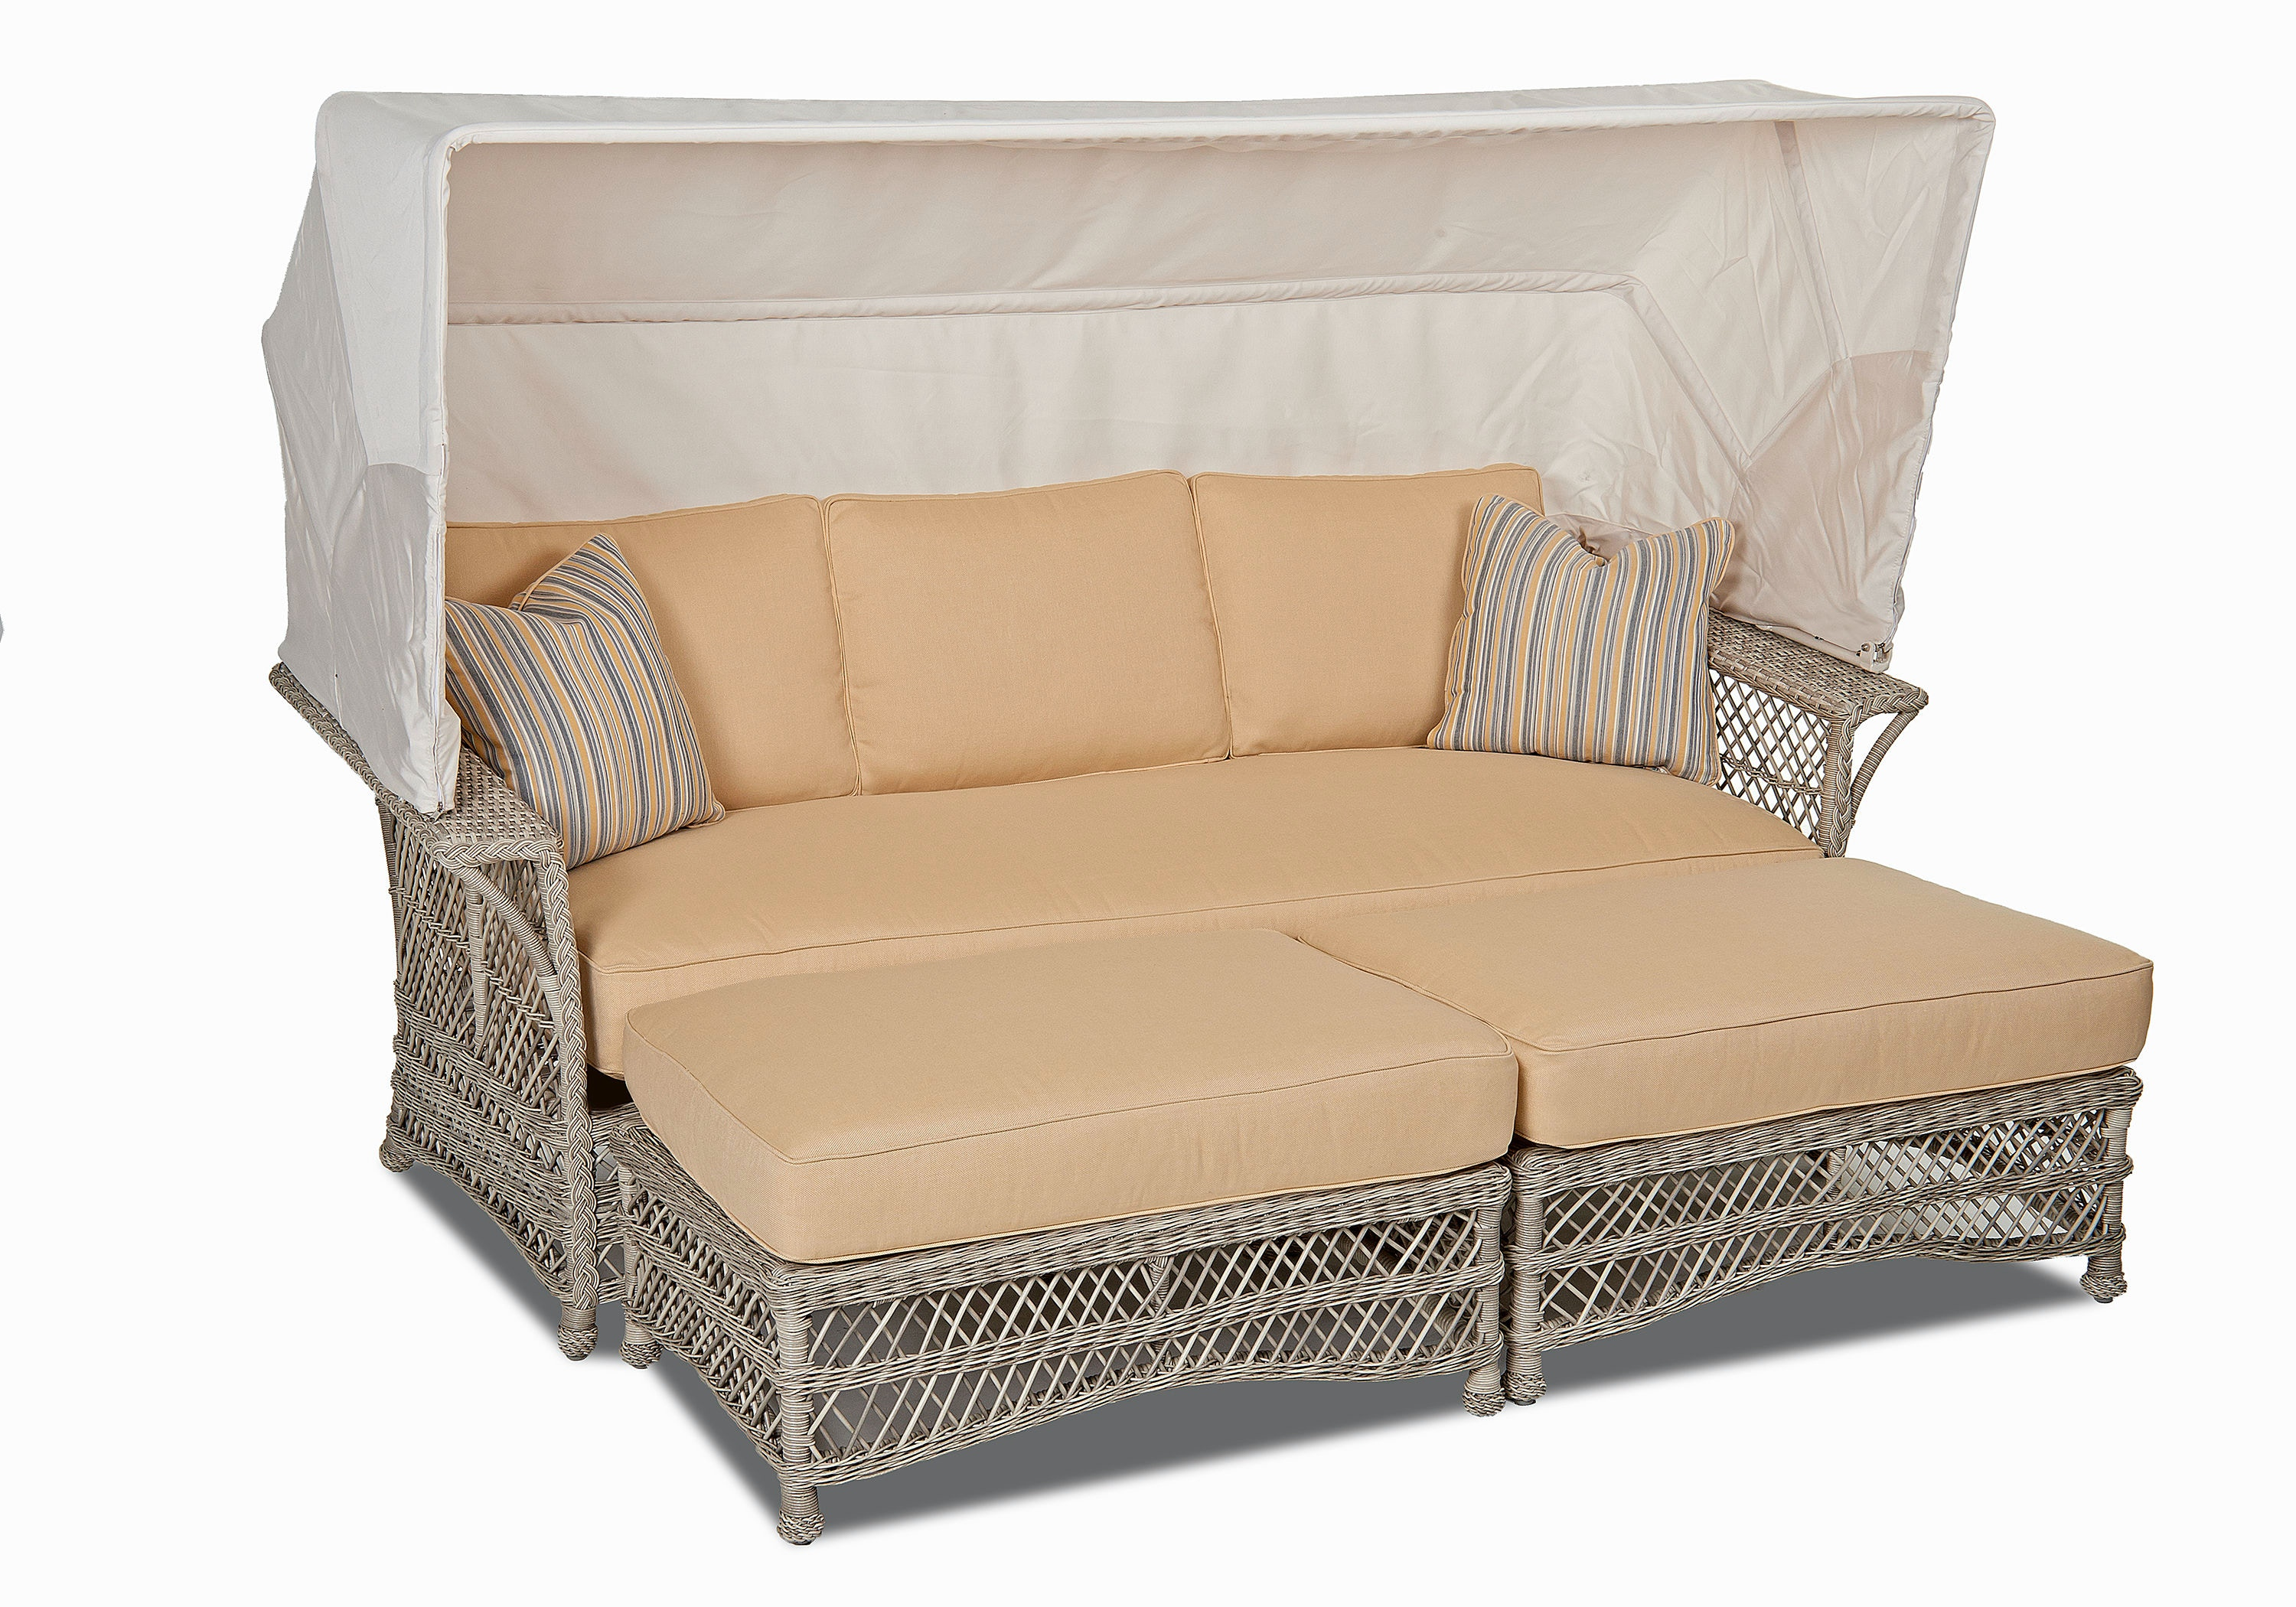 Klaussner Outdoor Willow Daybed W1200 DAY